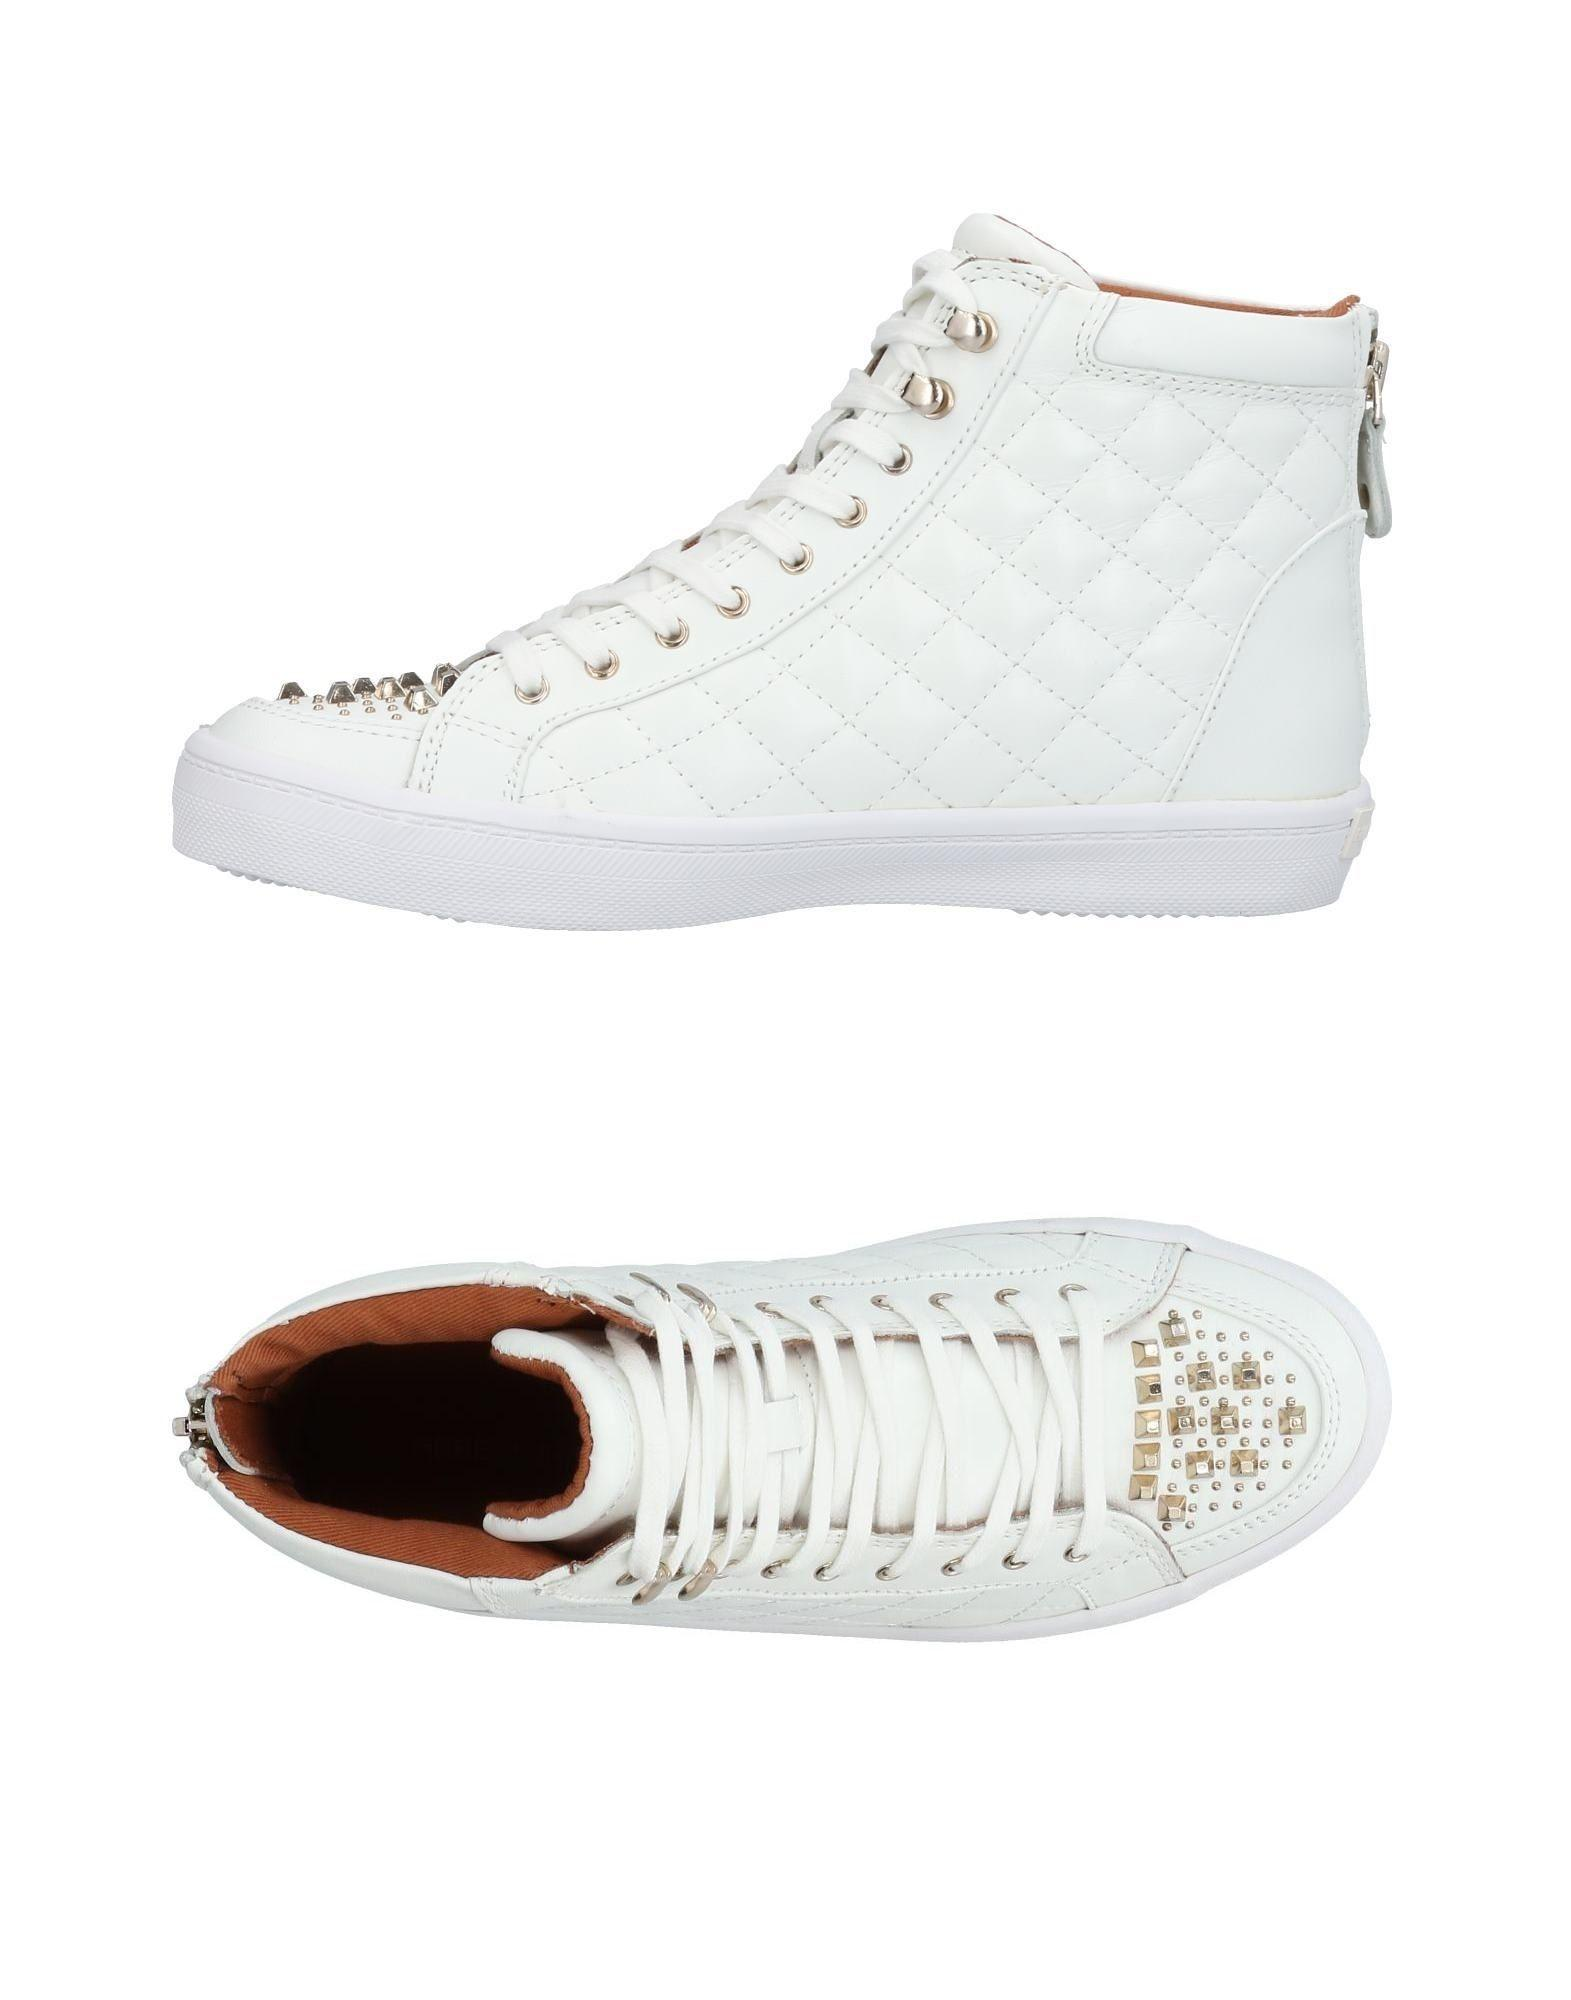 Rebecca Minkoff Sneakers In White